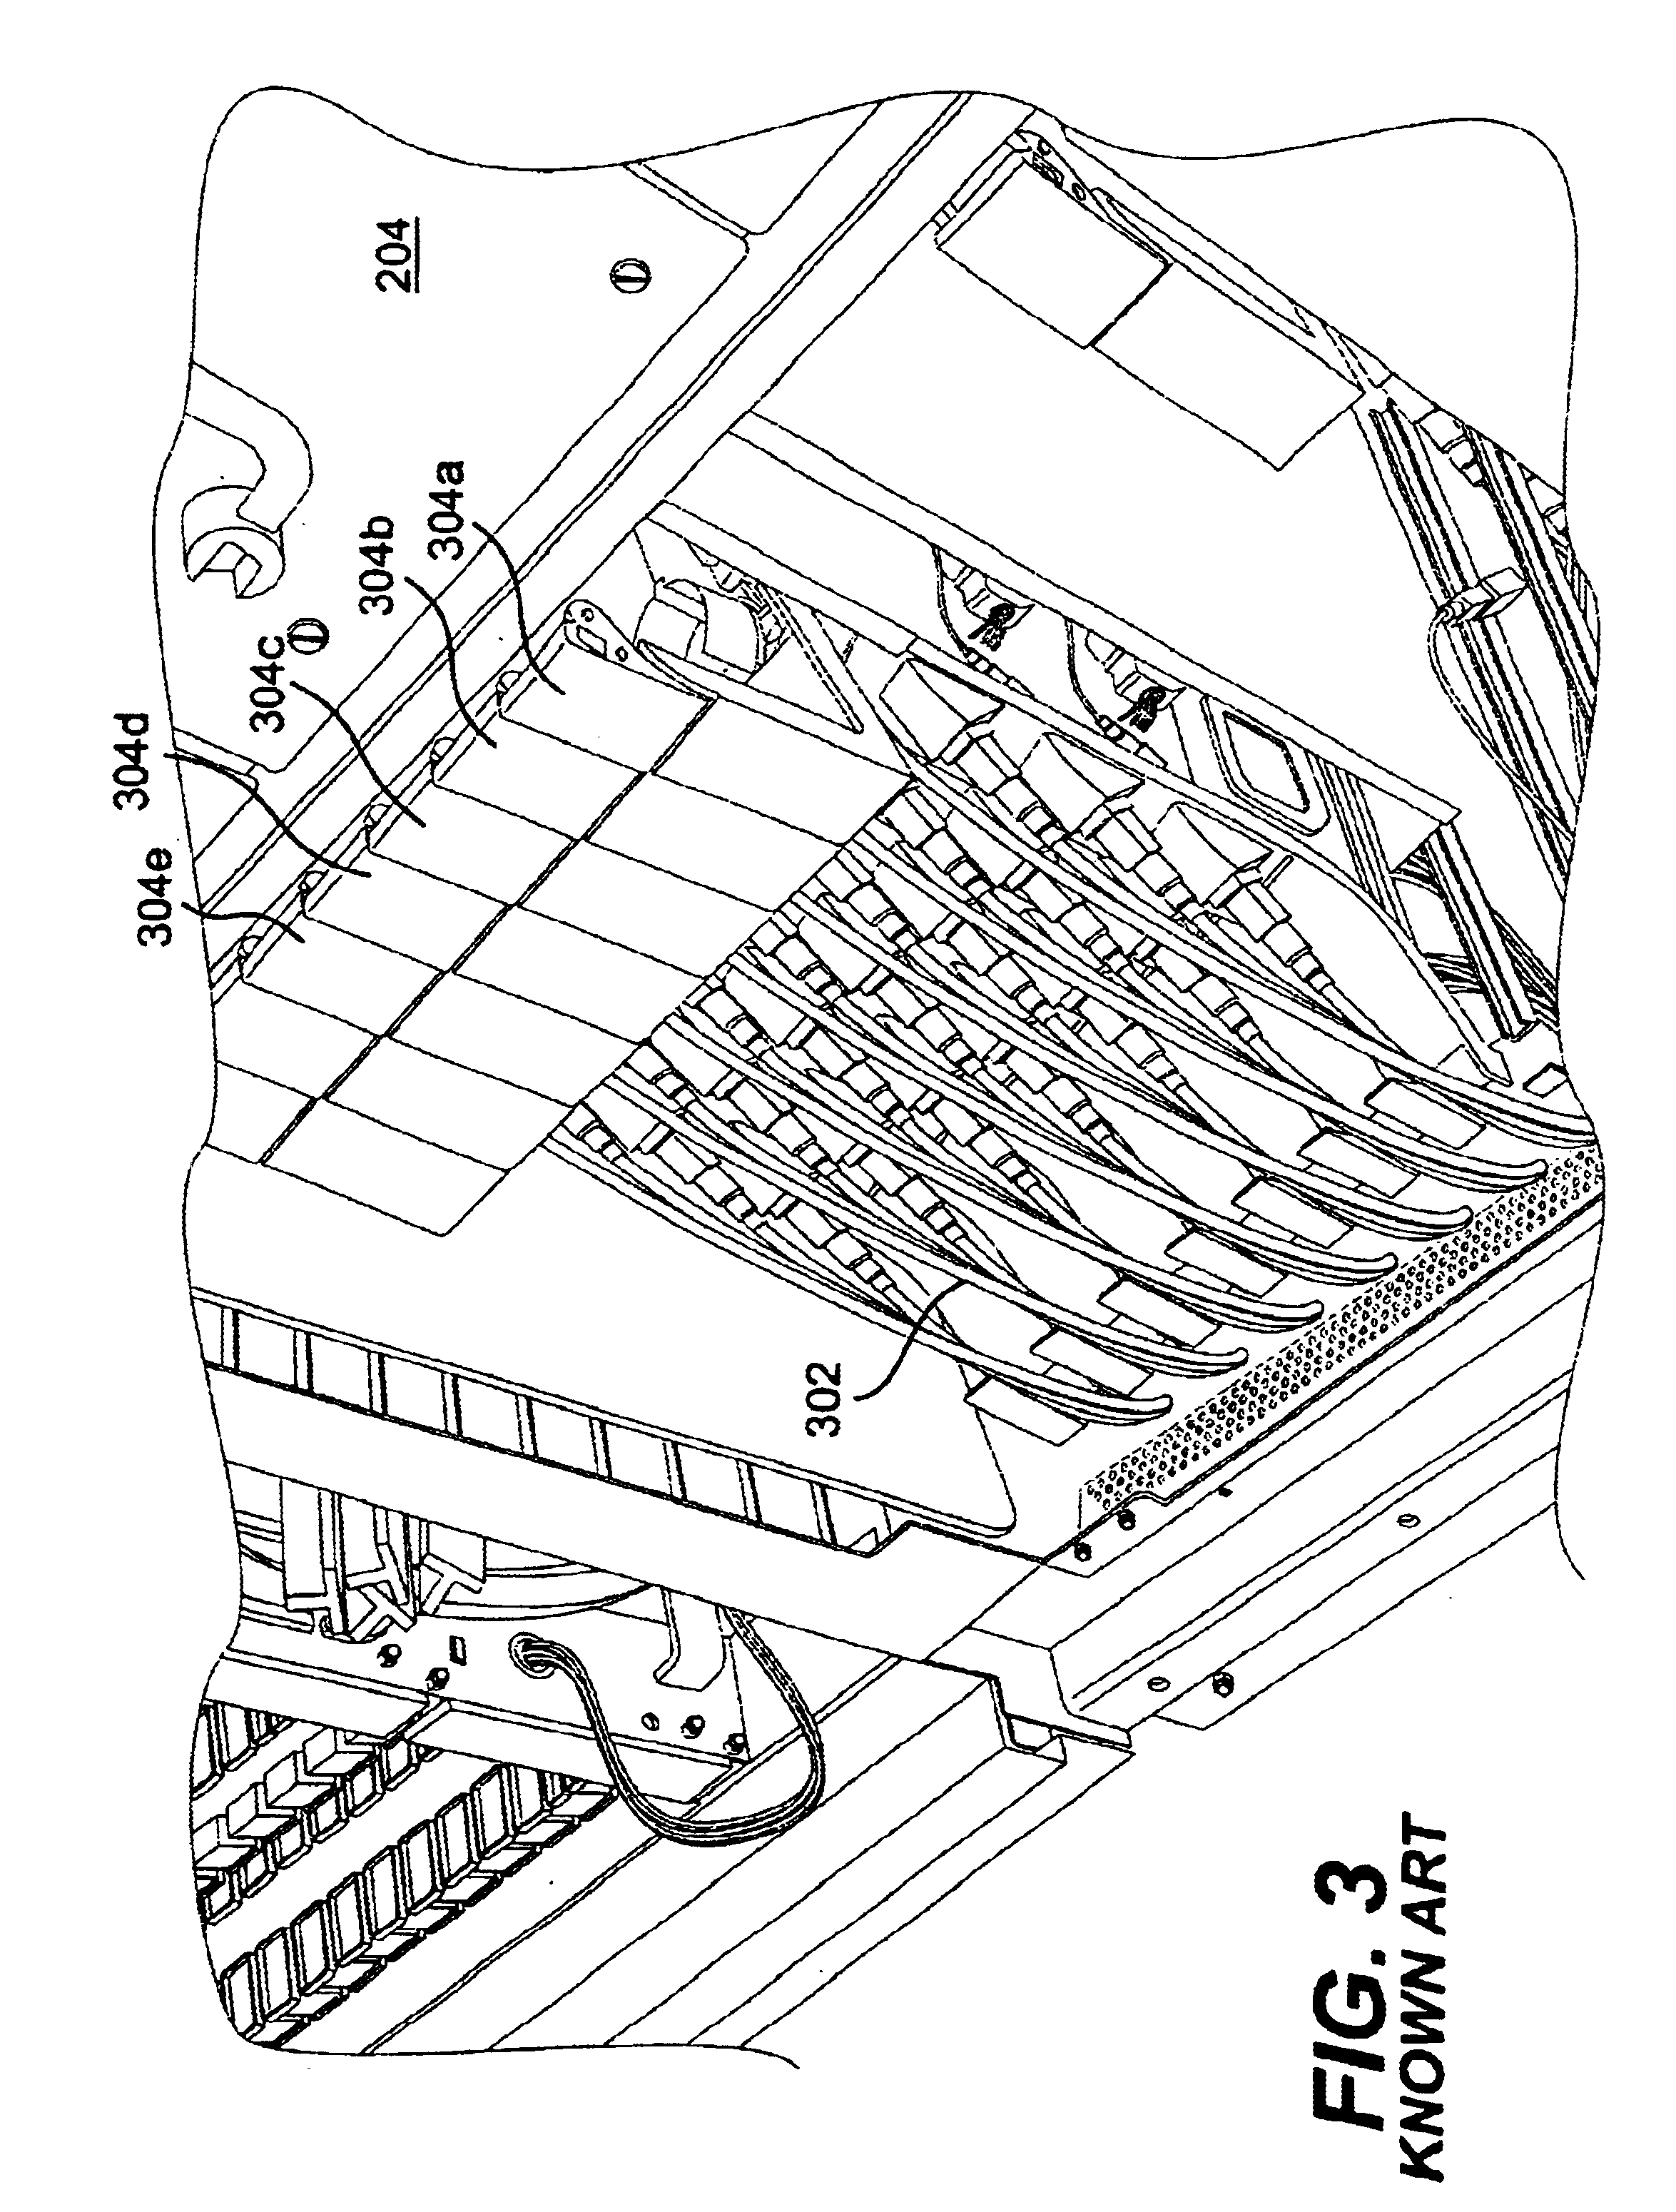 patent us6766095 - apparatus and method for slack management of fiber optic cables